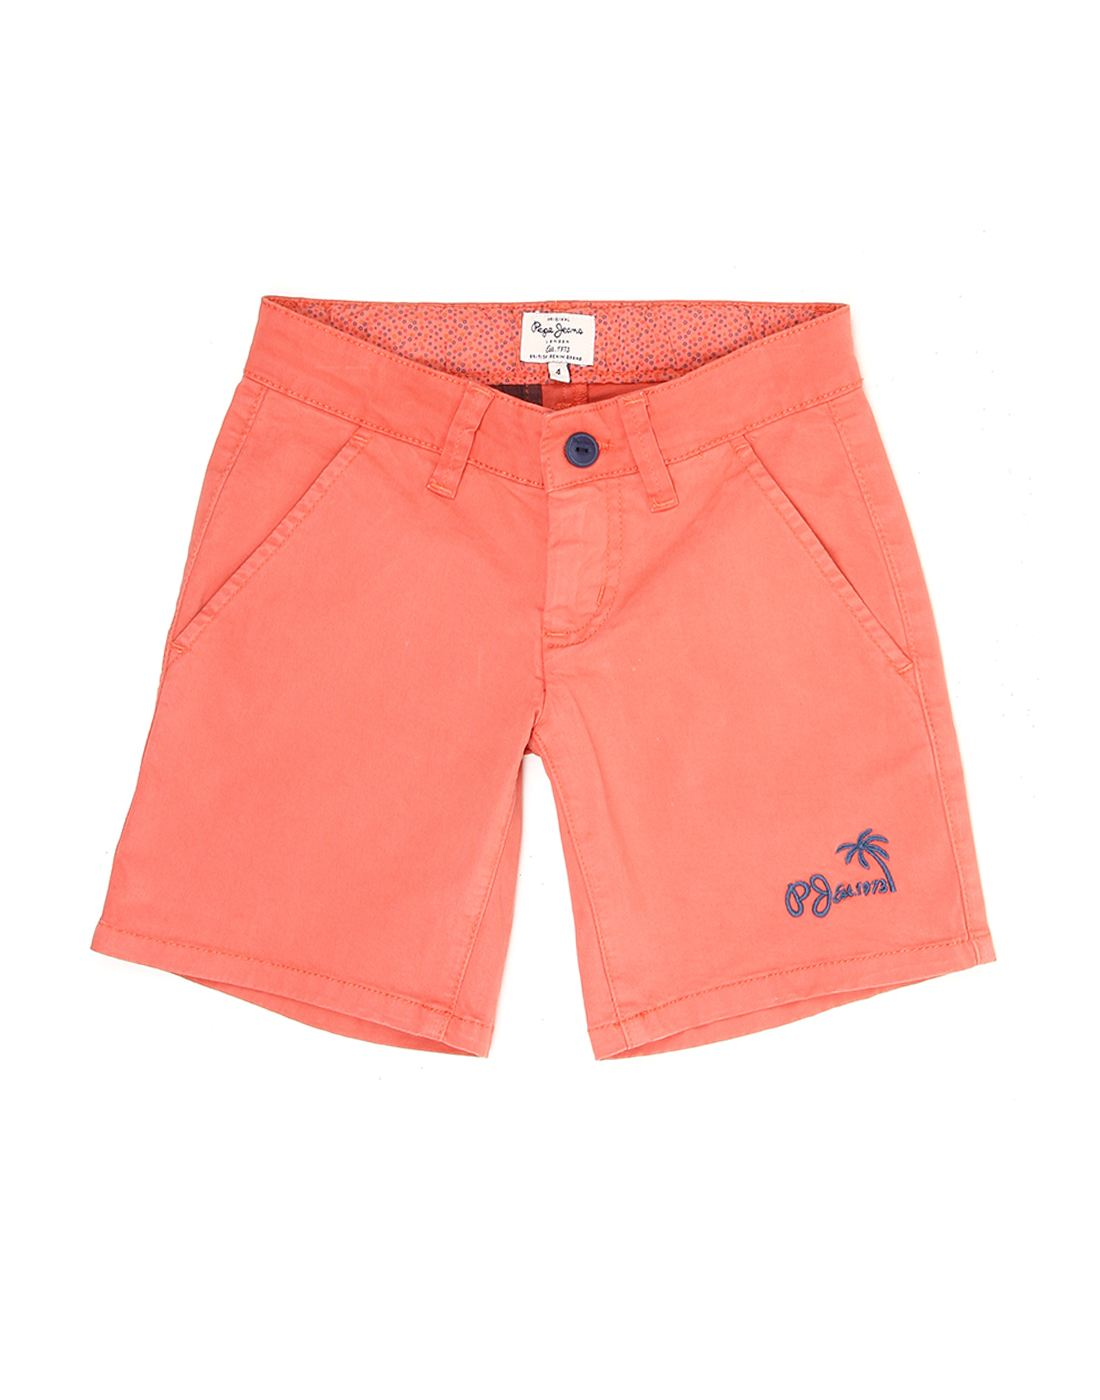 Pepe Jeans Boys Solid Casual Short